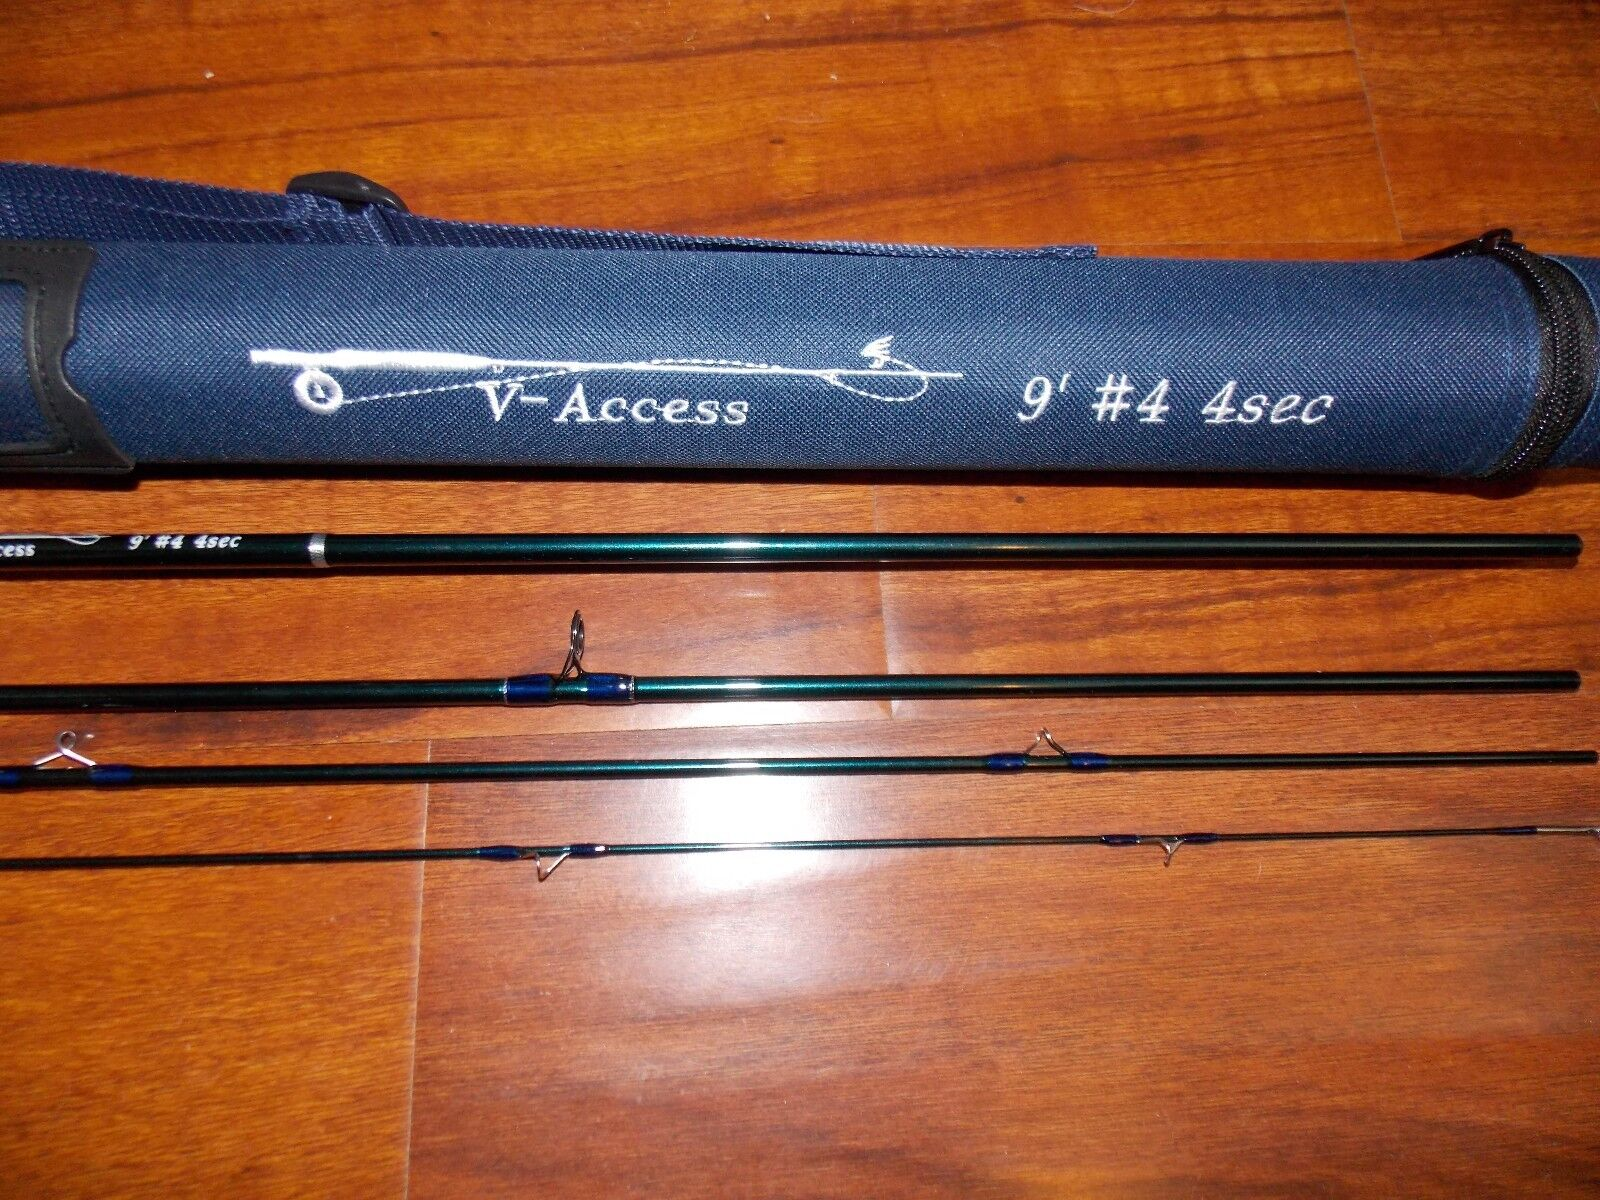 4 WT VAccess  Fly Fishing Rod   9 Foot  4 Sec. with Tube  FREE 3 DAY SHIPPING